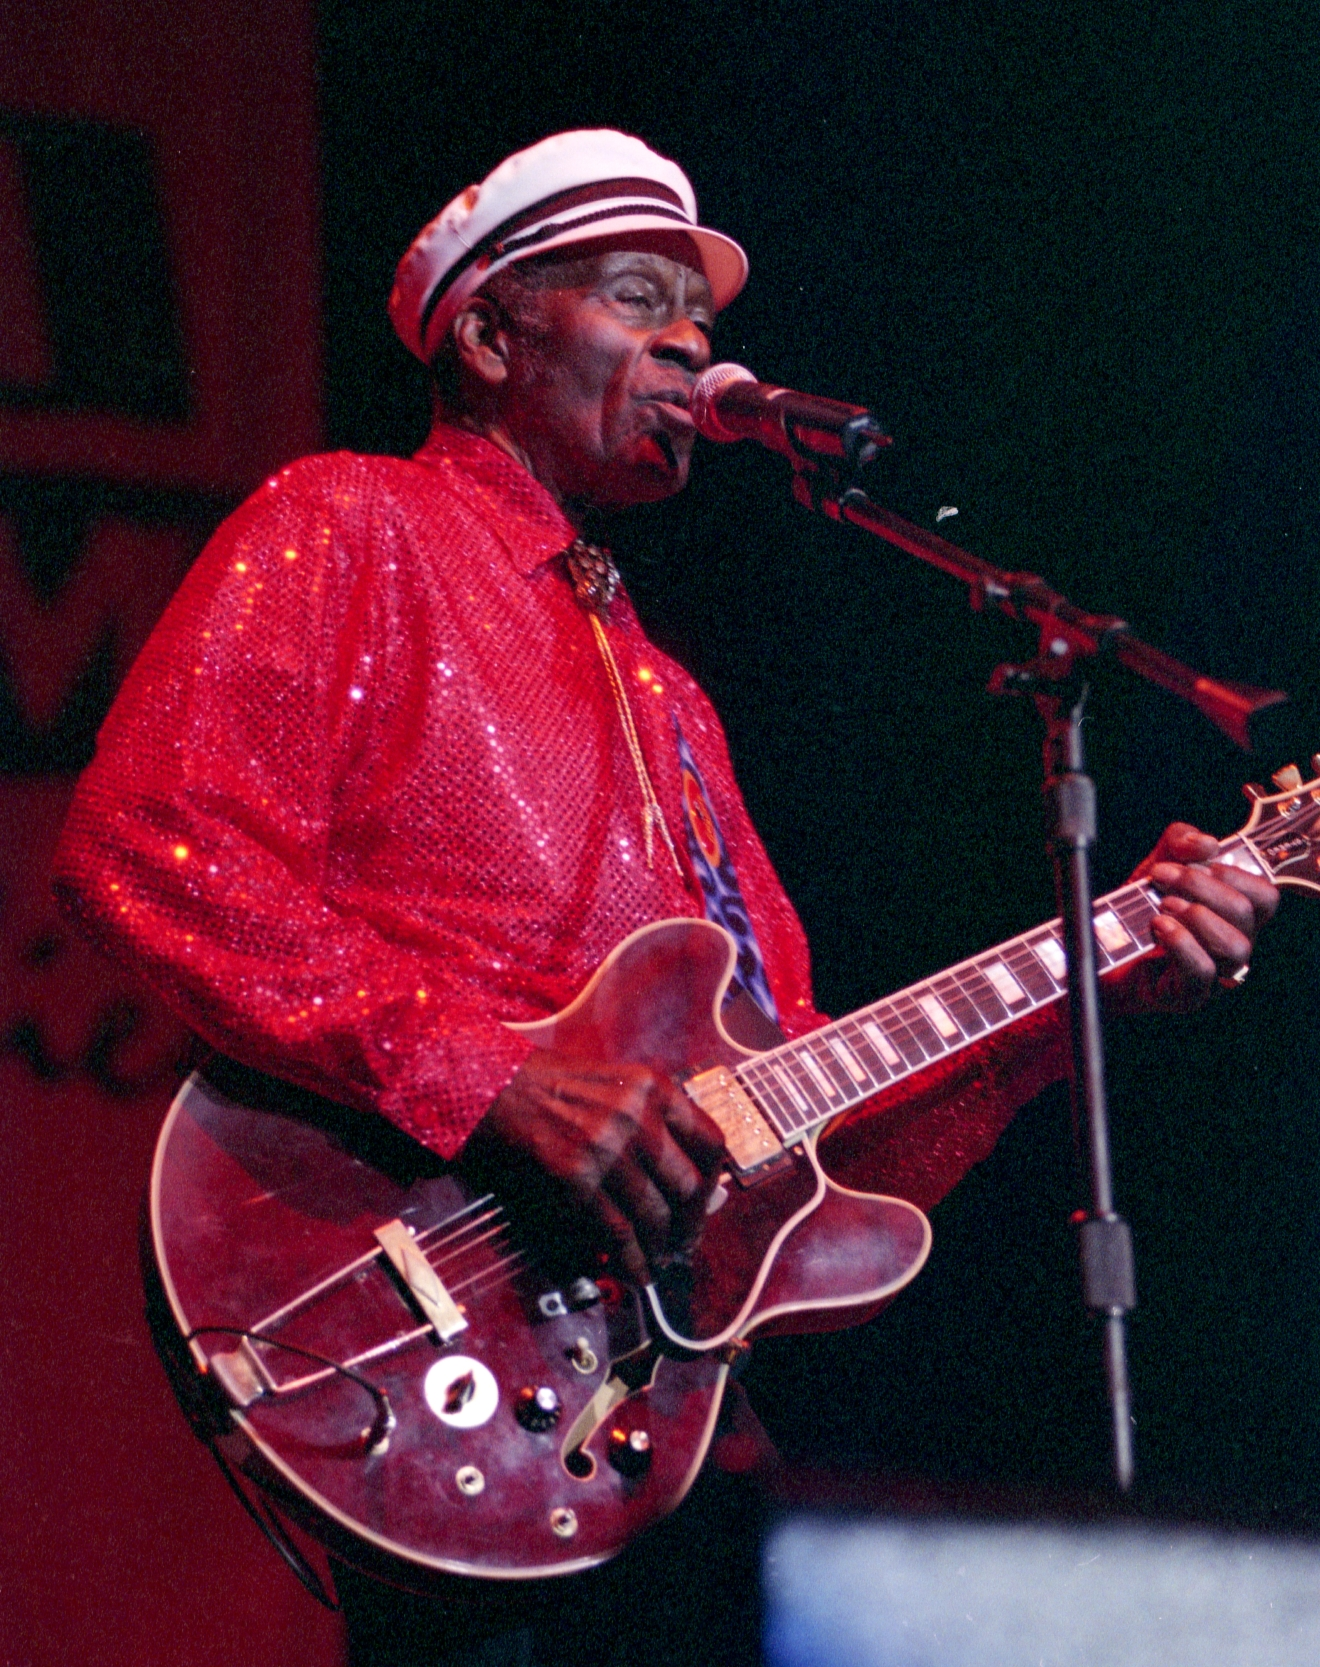 Chuck Berry performs at the Orleans Saturday, July 5, 2003, in Las Vegas. [Las Vegas News Bureau]